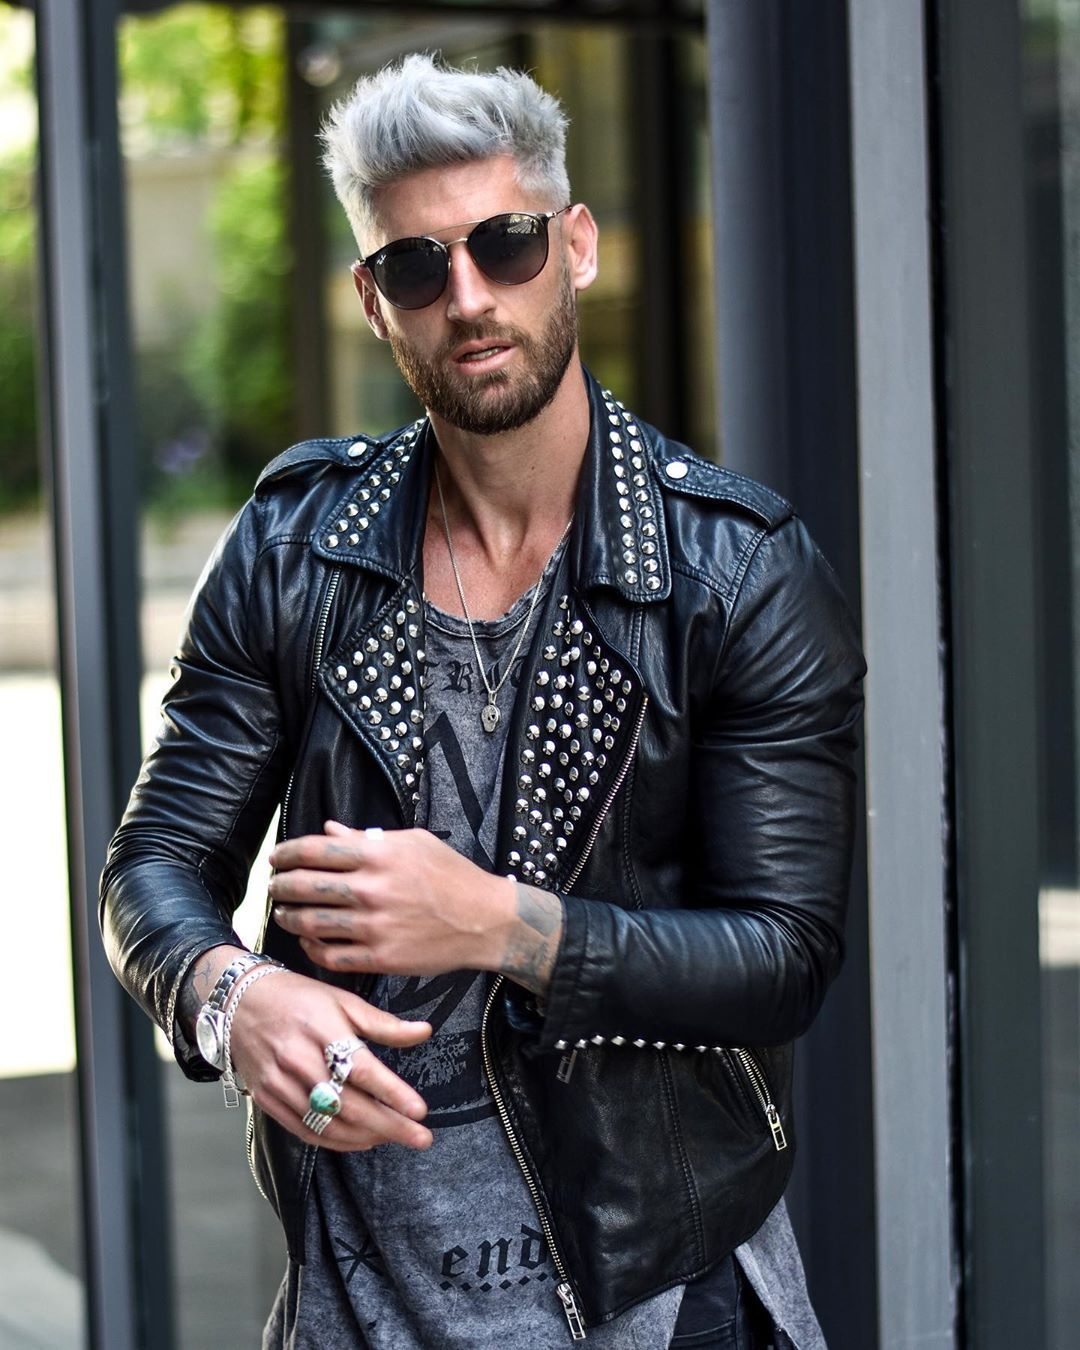 New Look Vbstyle Leather Jeans Men Leather Jacket Outfit Men Mens Fashion Blogger